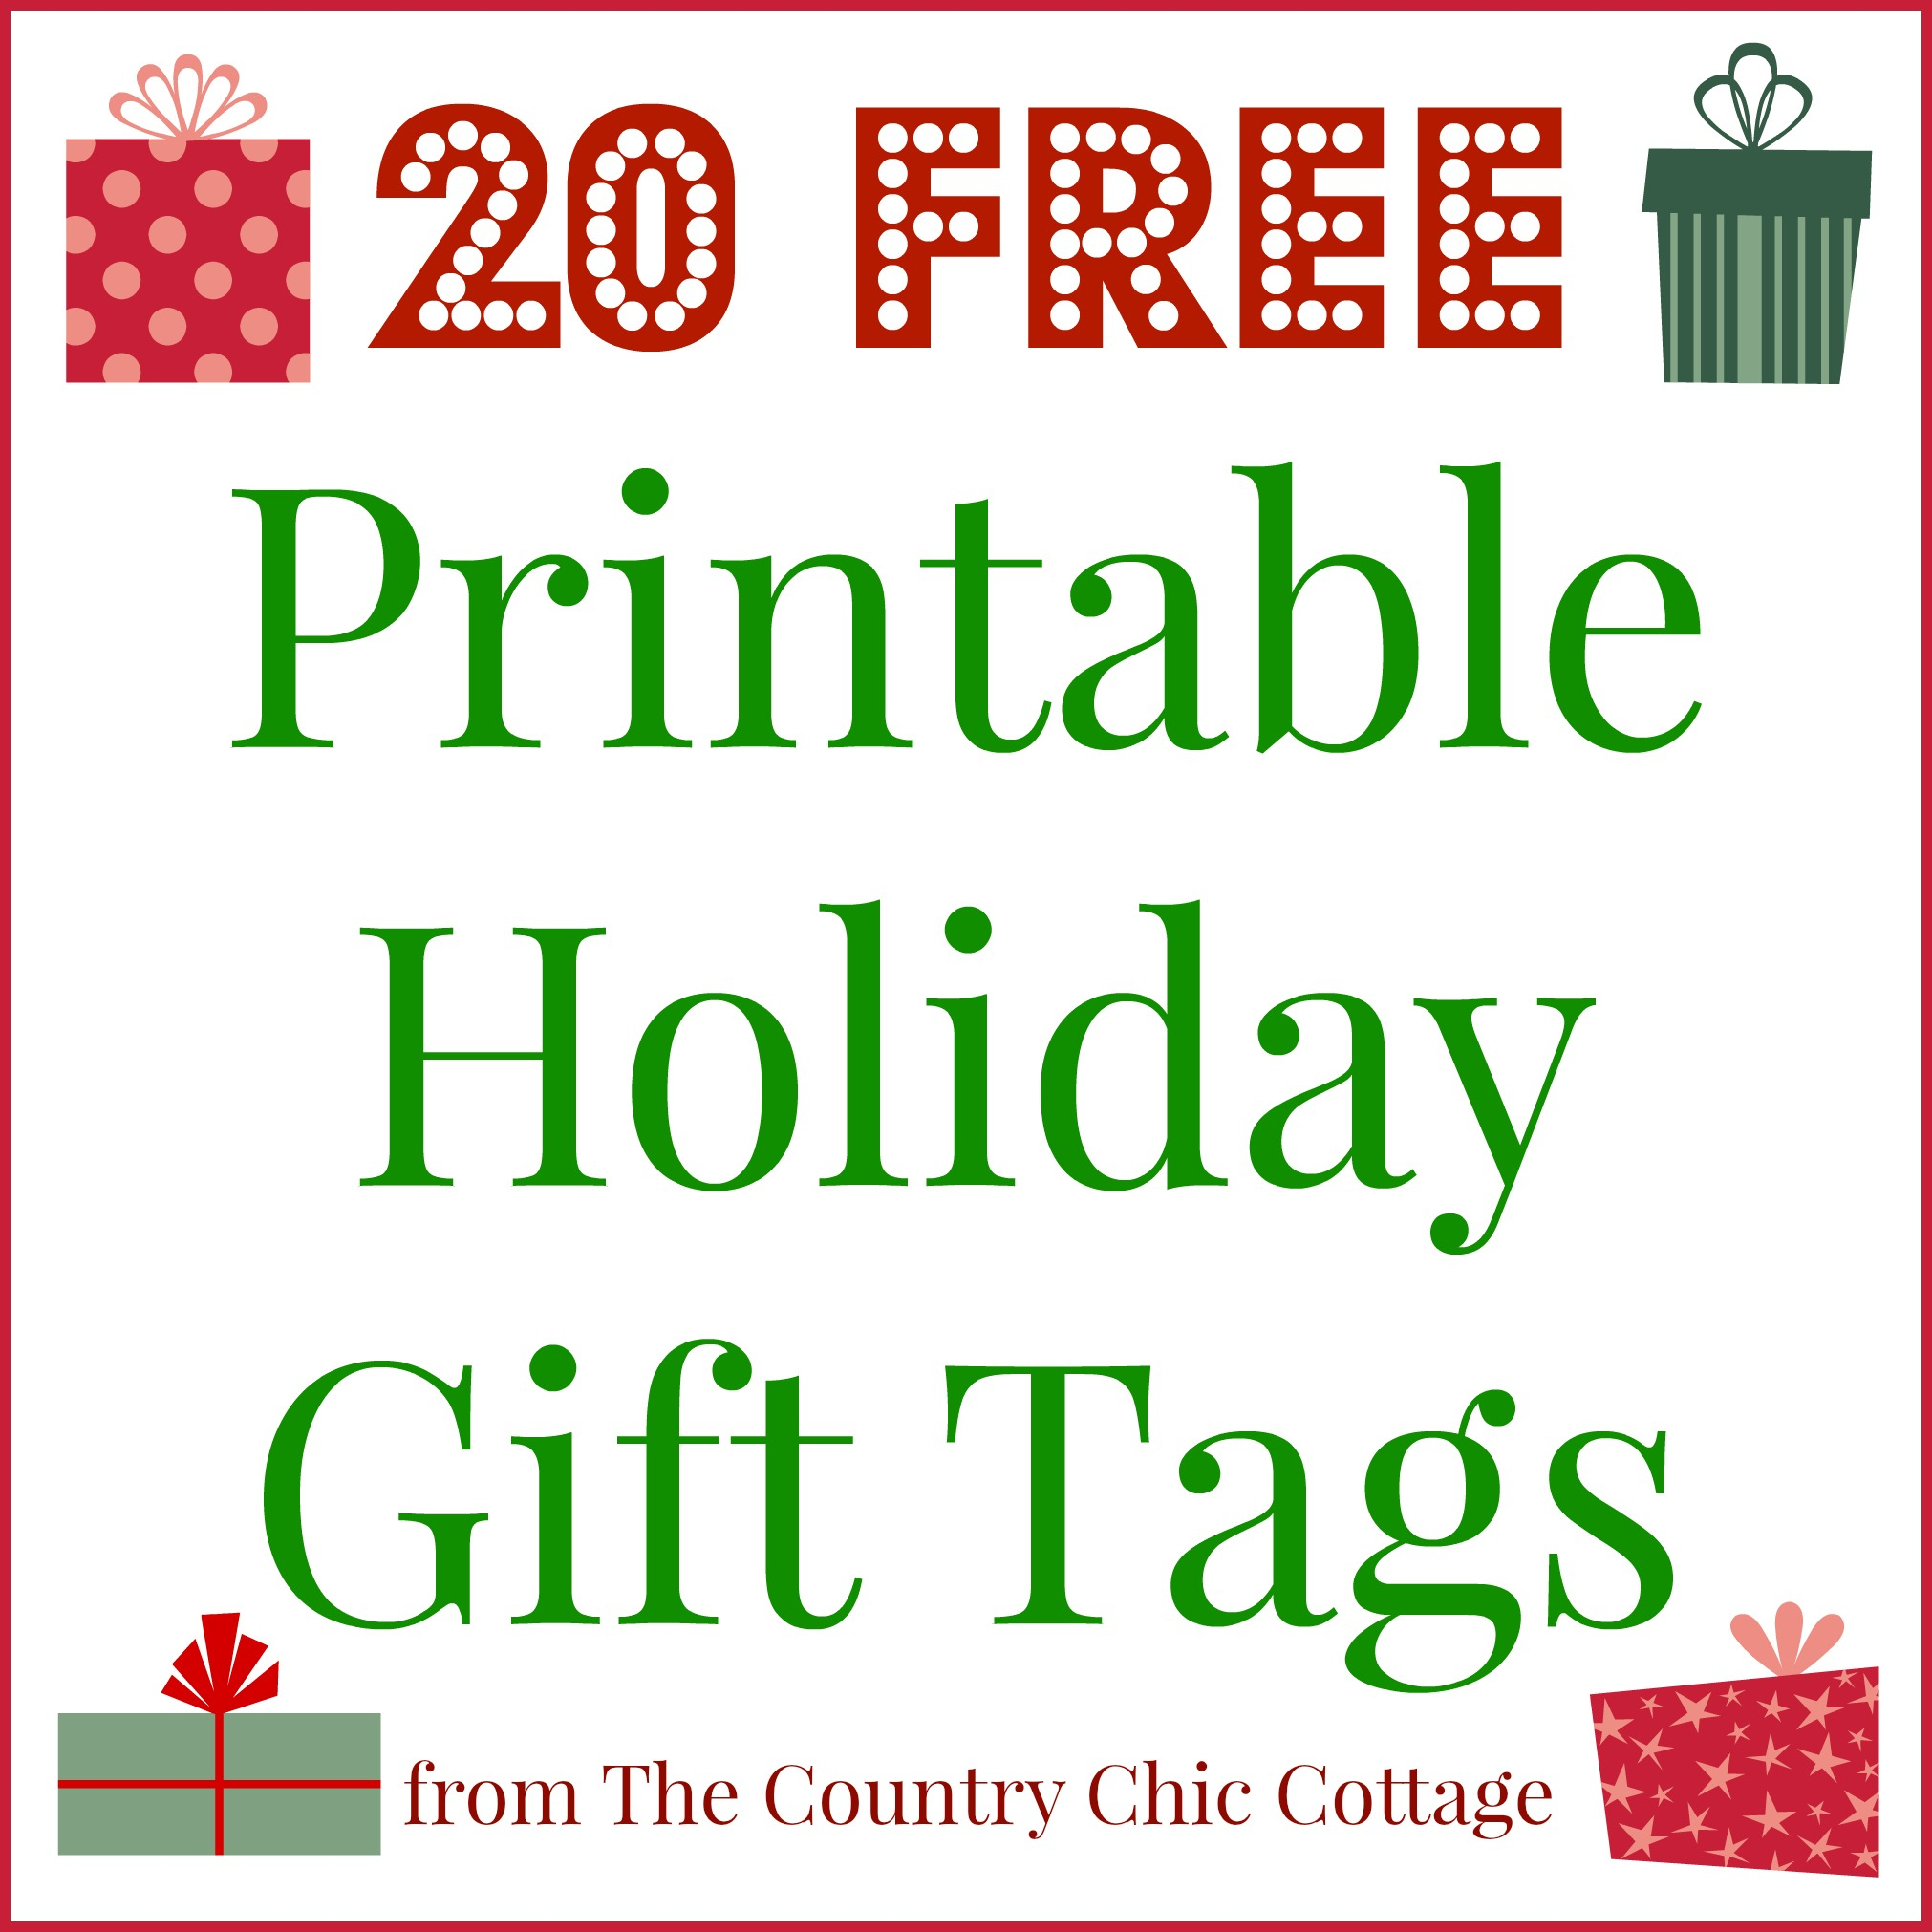 20 Printable Holiday Gift Tags (For Free!!) - The Country Chic Cottage - Free Printable Holiday Gift Labels